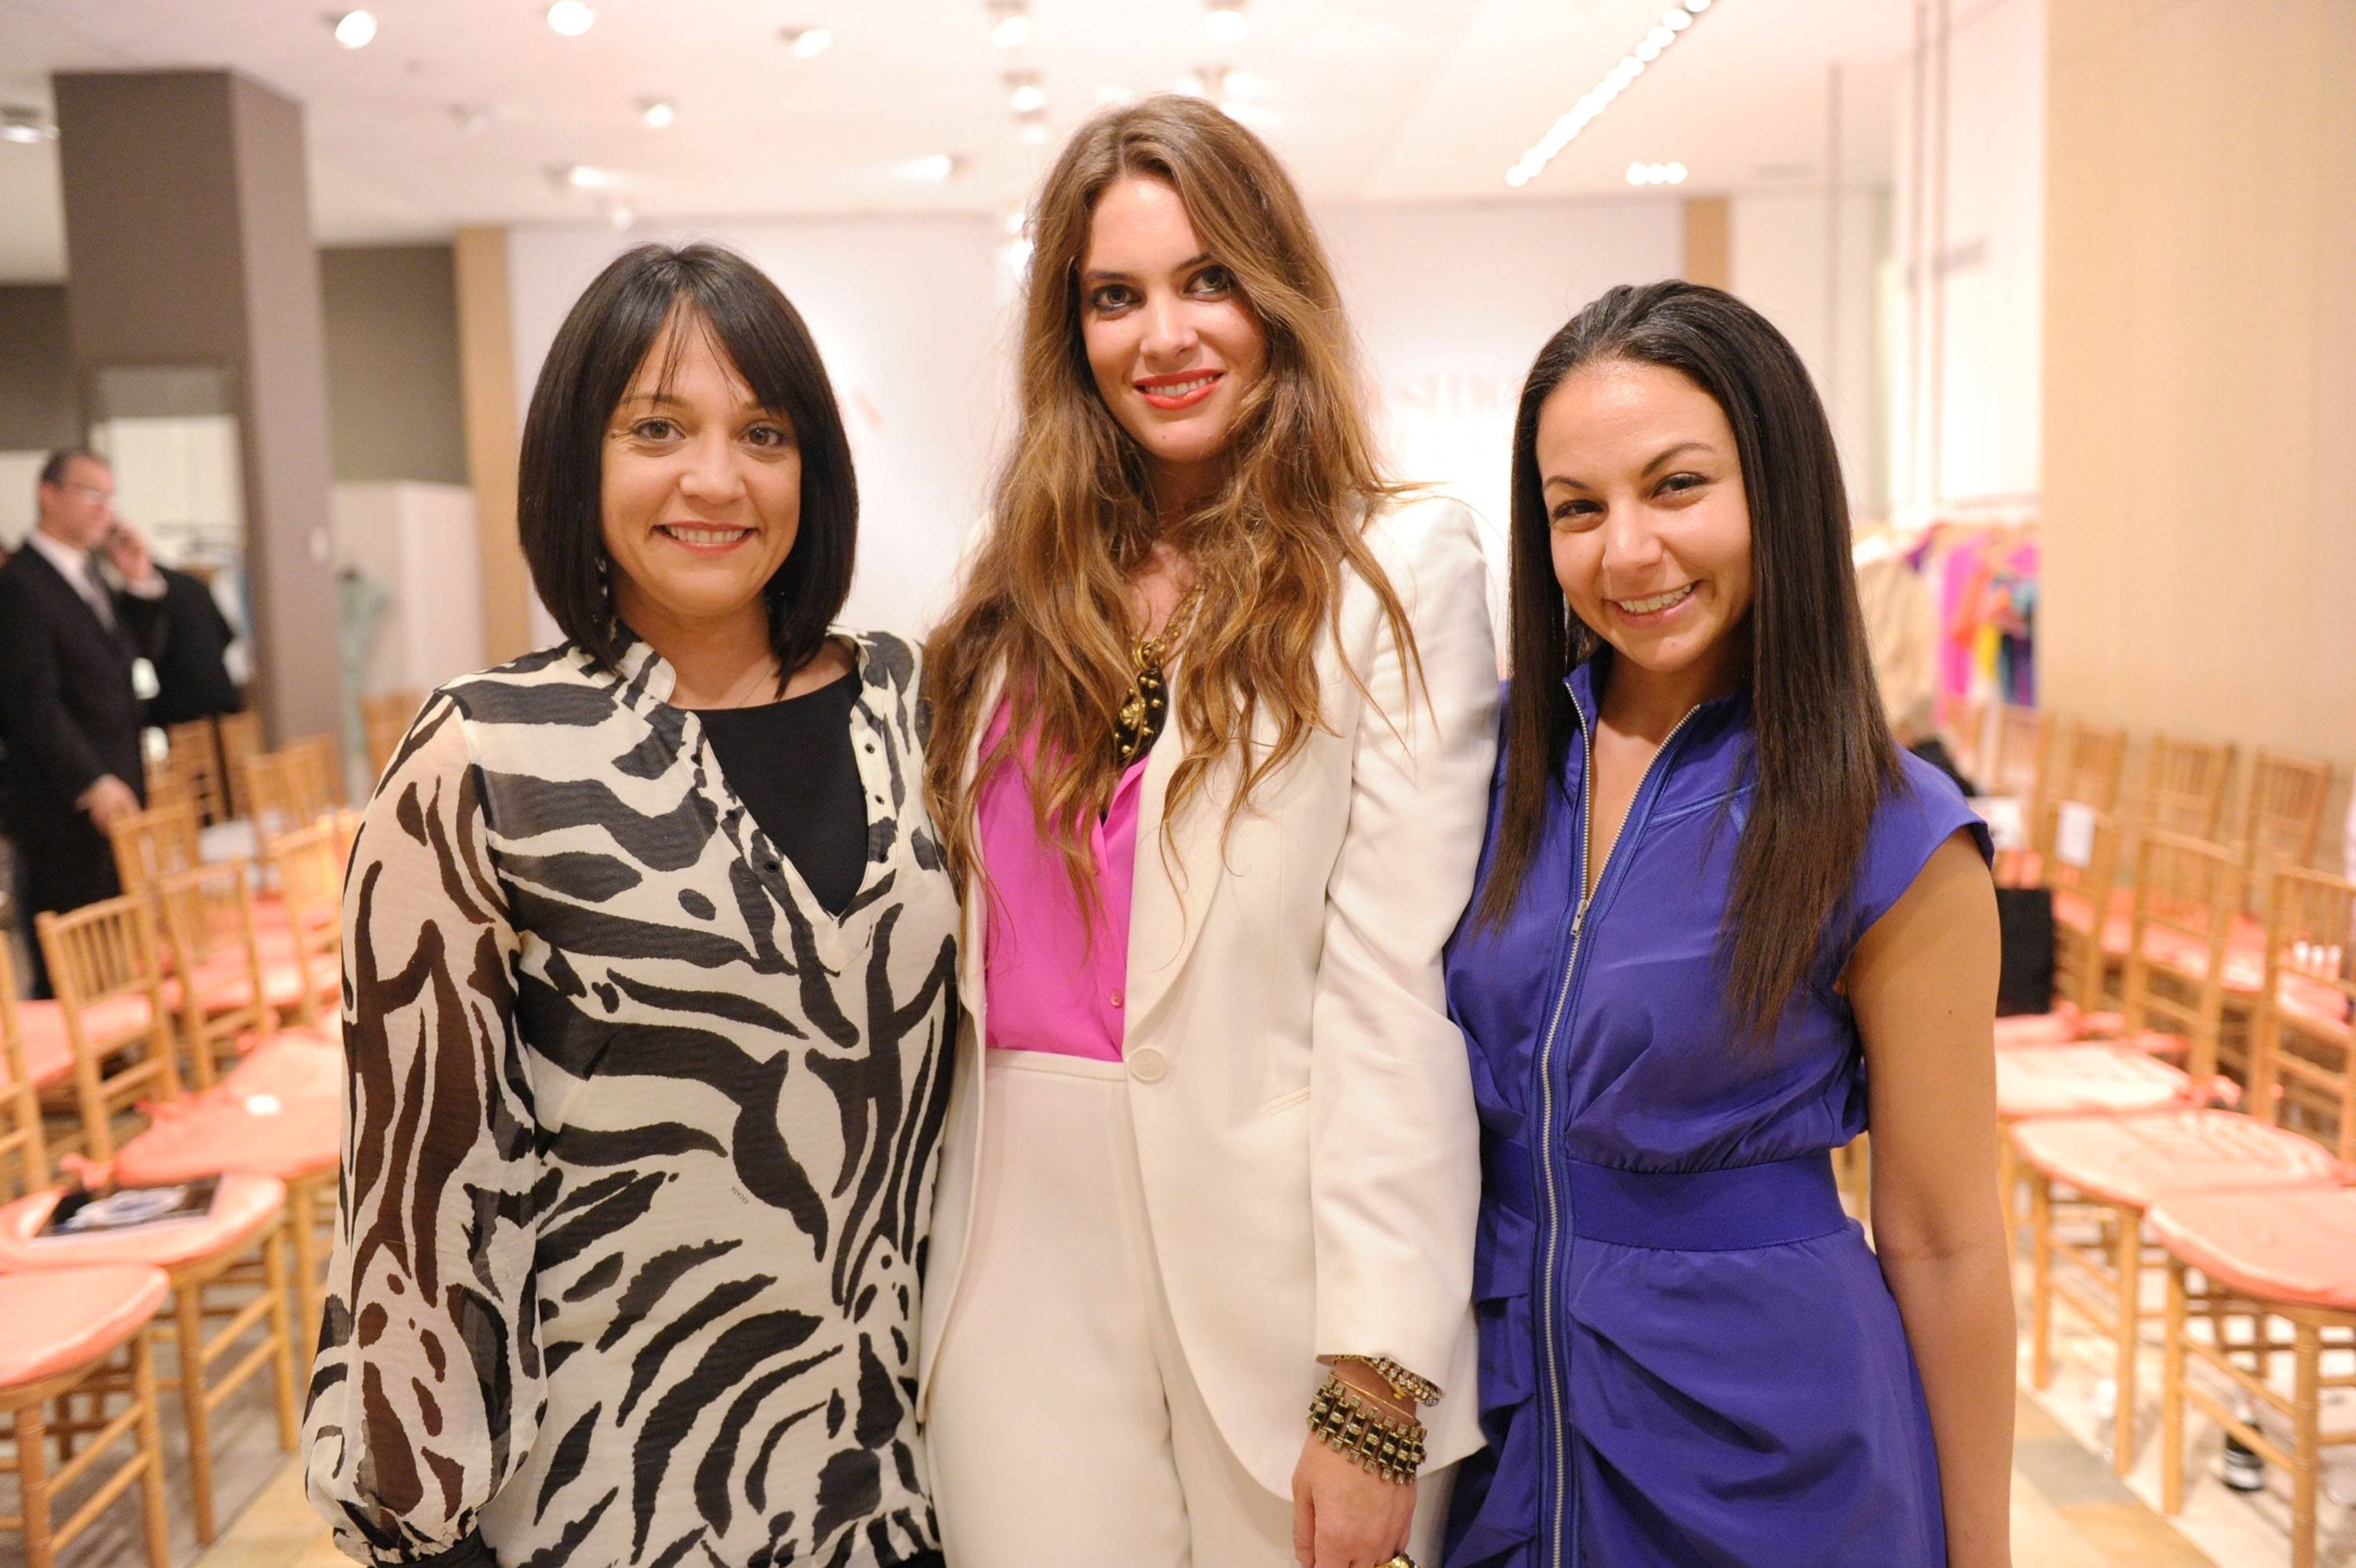 Haute Event: Haute Living Hosts Fashion Rules! Spring Fashion Show at Neiman Marcus Bal Harbour